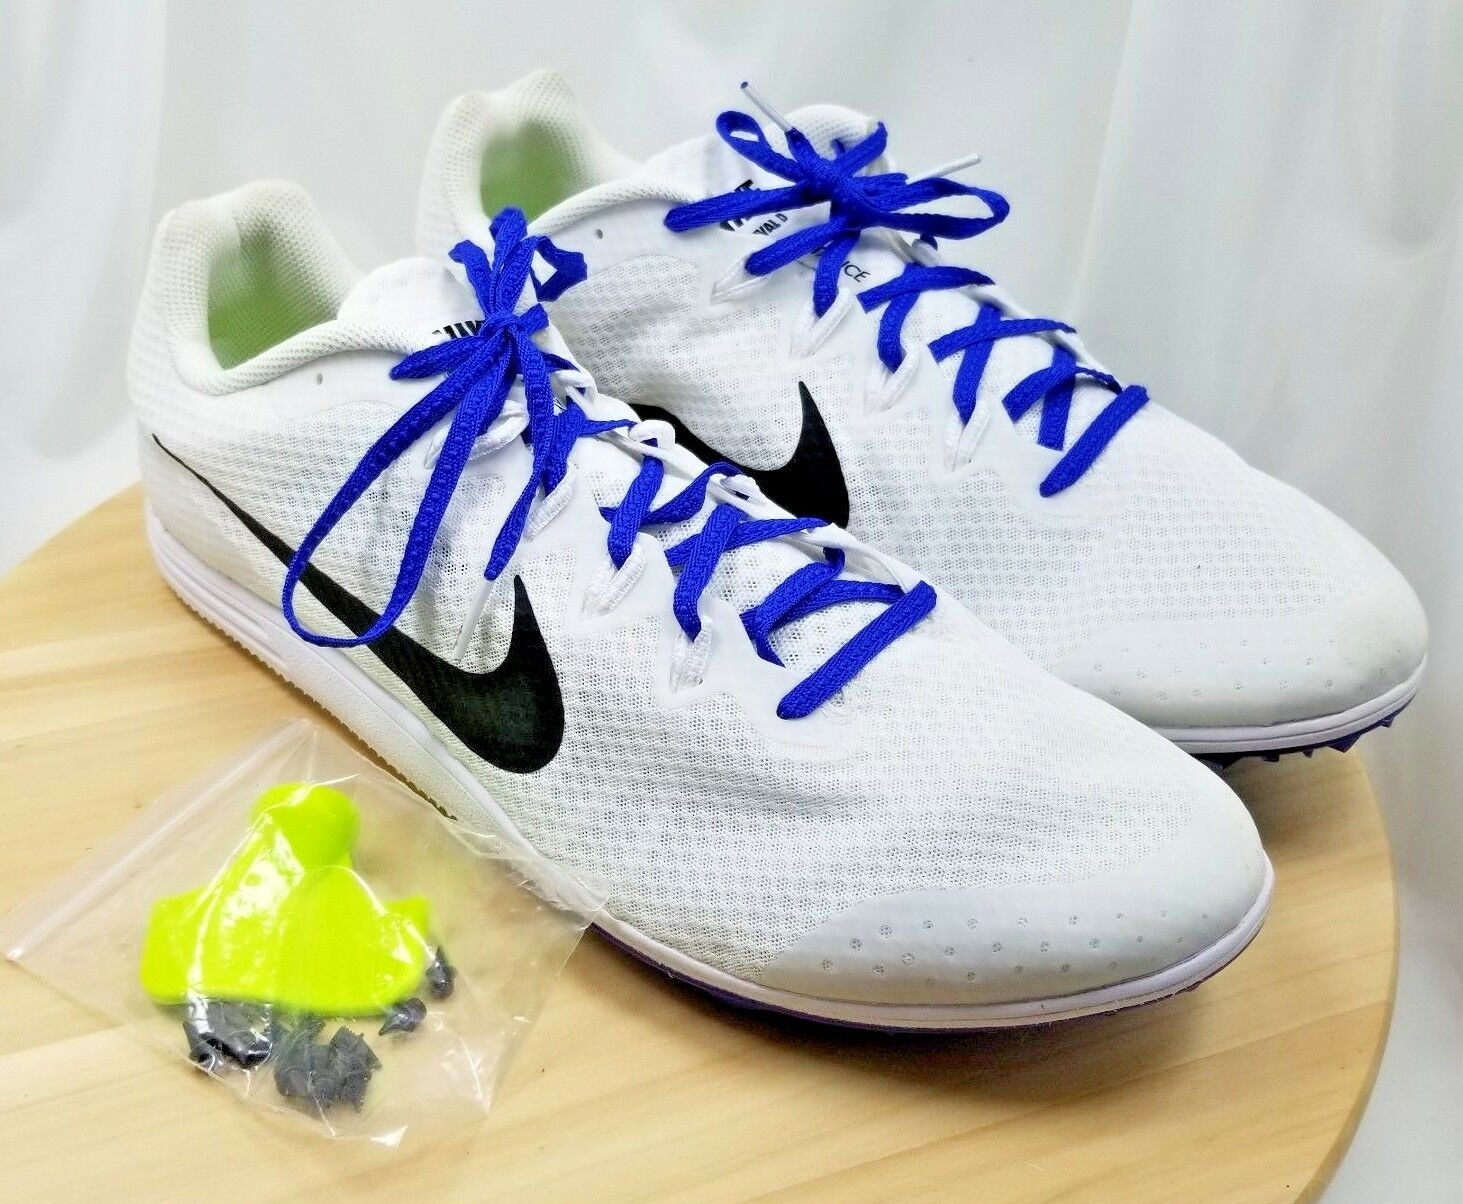 Nike Zoom Rival D 9 White Track Field Spikes Distance Racing Shoe - US:15/UK:14 Special limited time